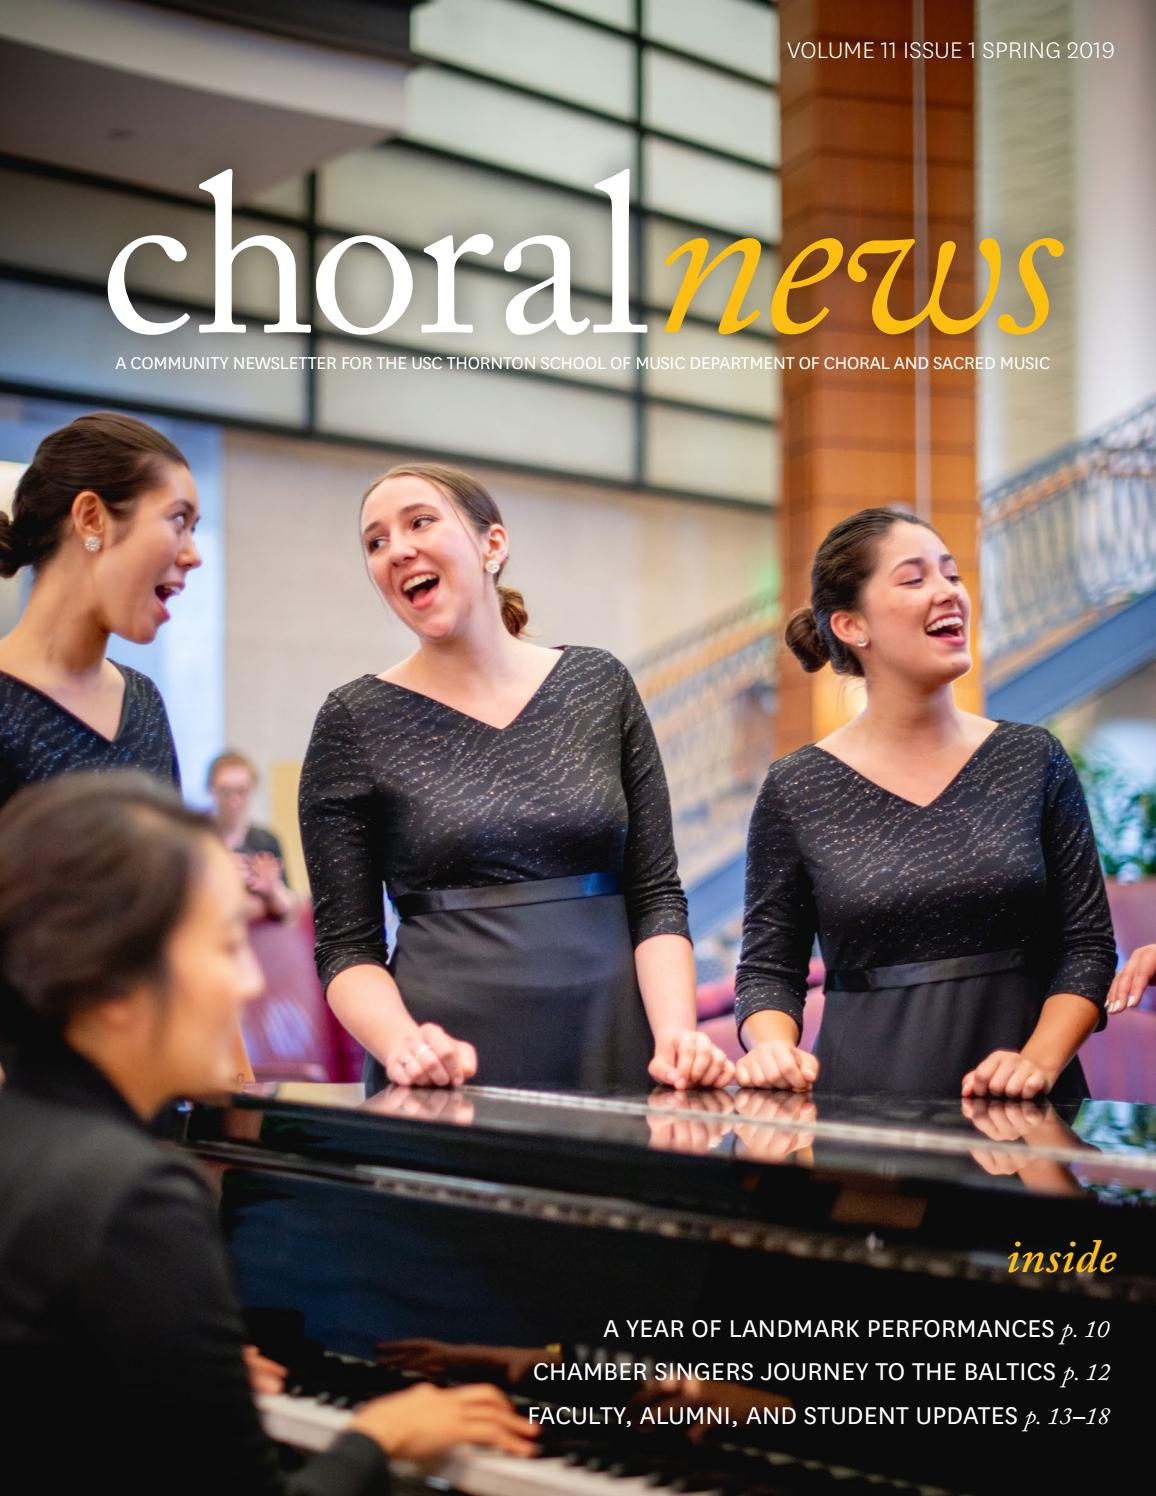 2019 Usc Thornton Dept Of Choral Sacred Music Newsletter By Usc Thornton School Of Music Issuu